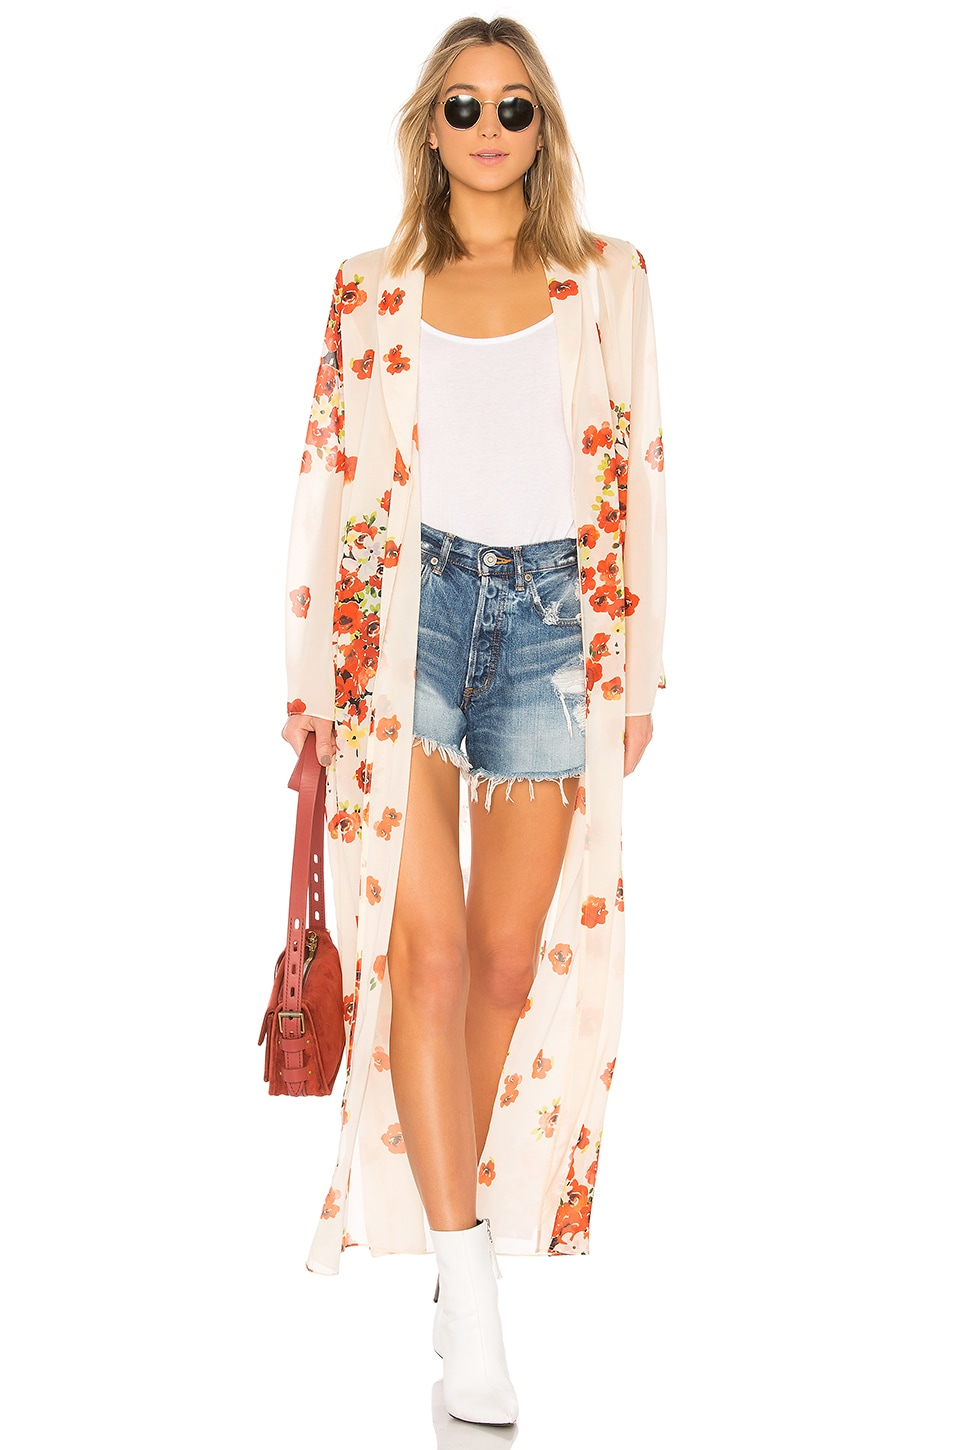 House of Harlow 1960 x REVOLVE Ruby Jacket in Poppy Floral